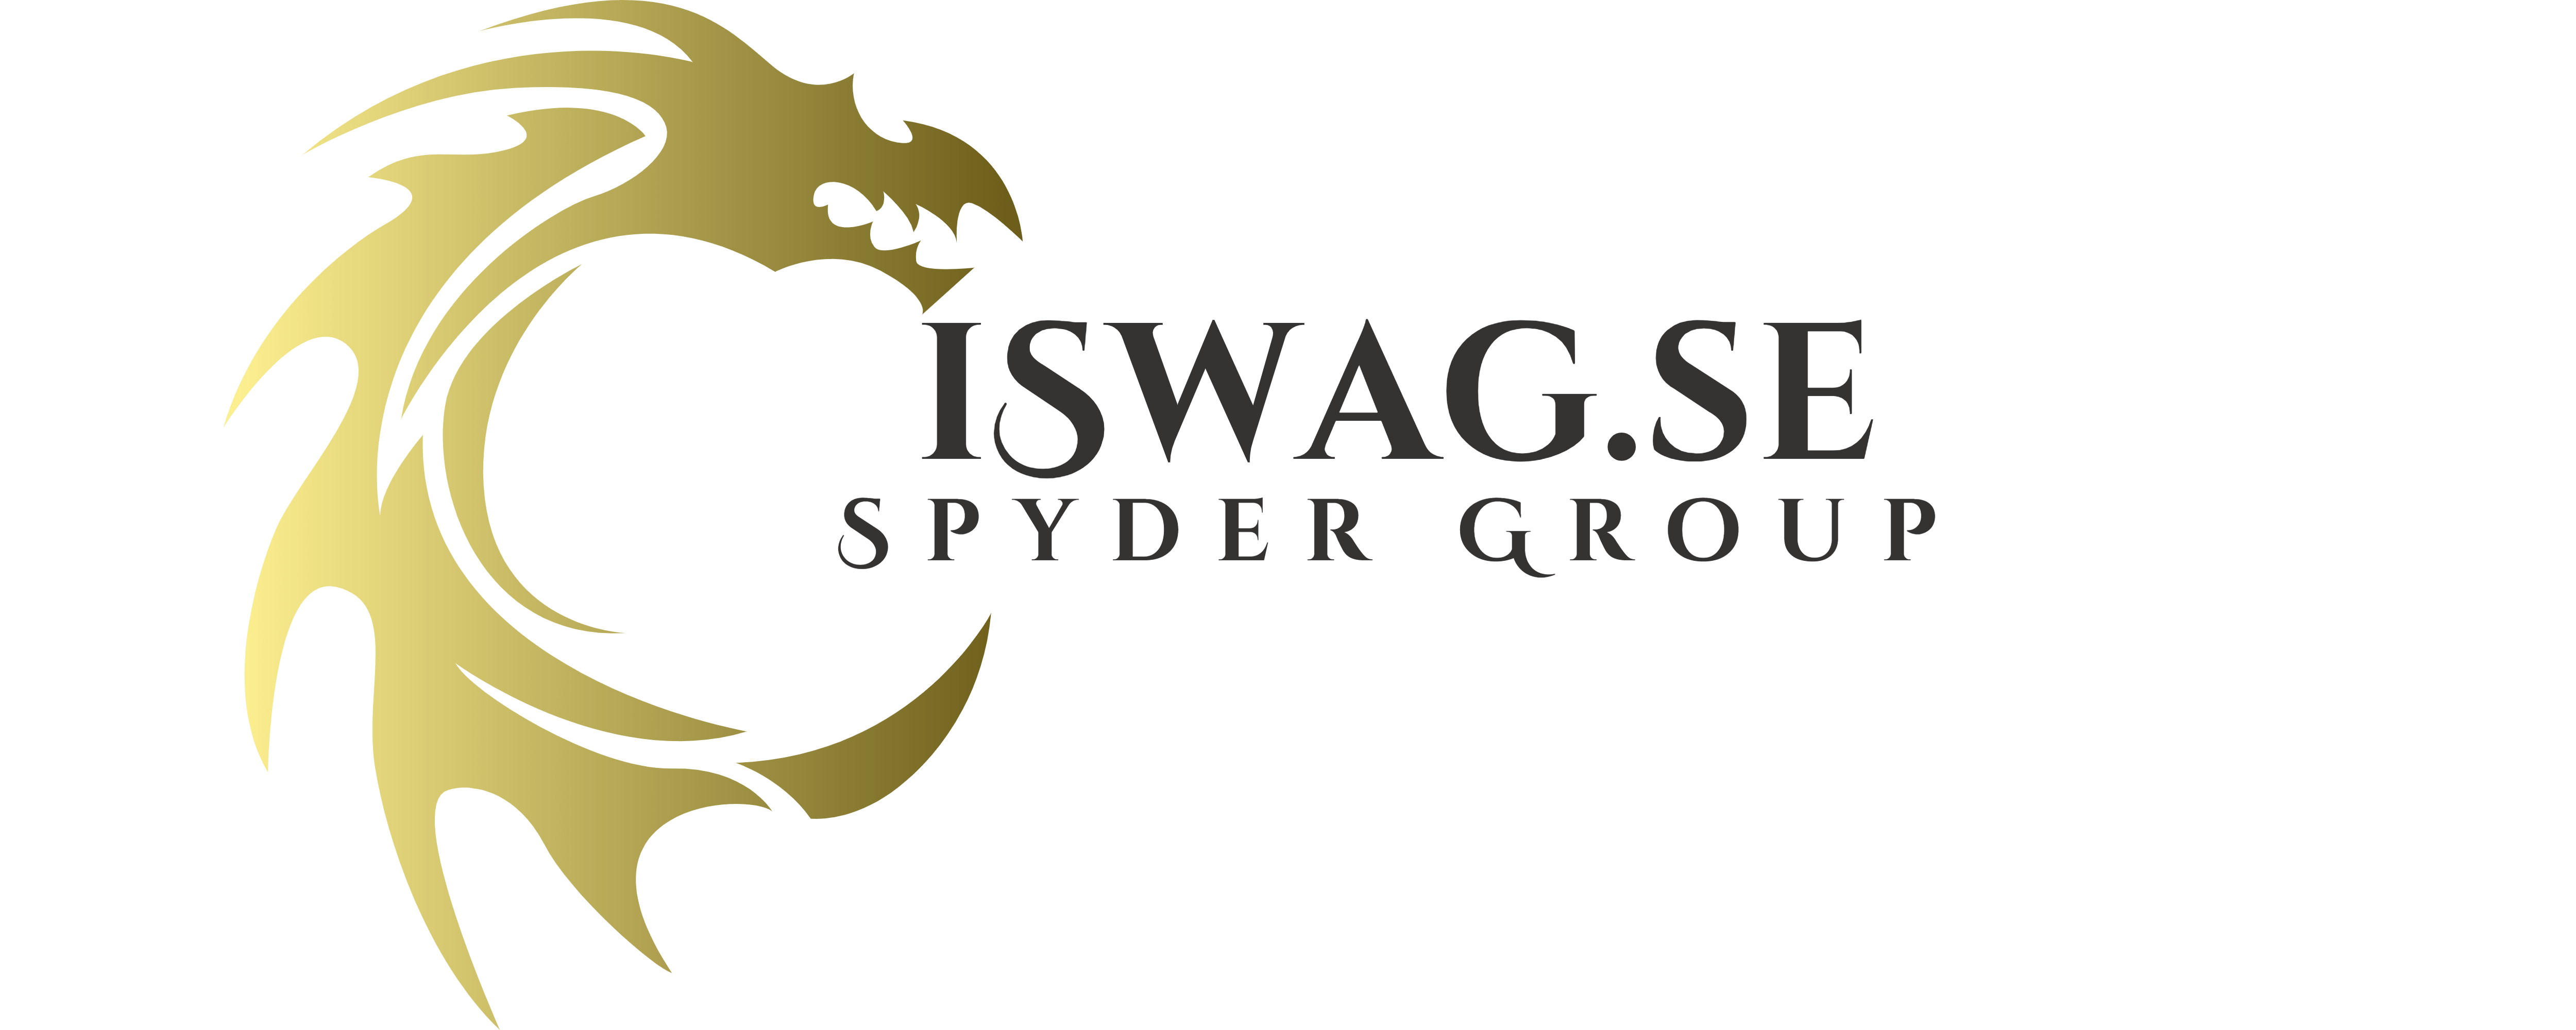 iSwag.se